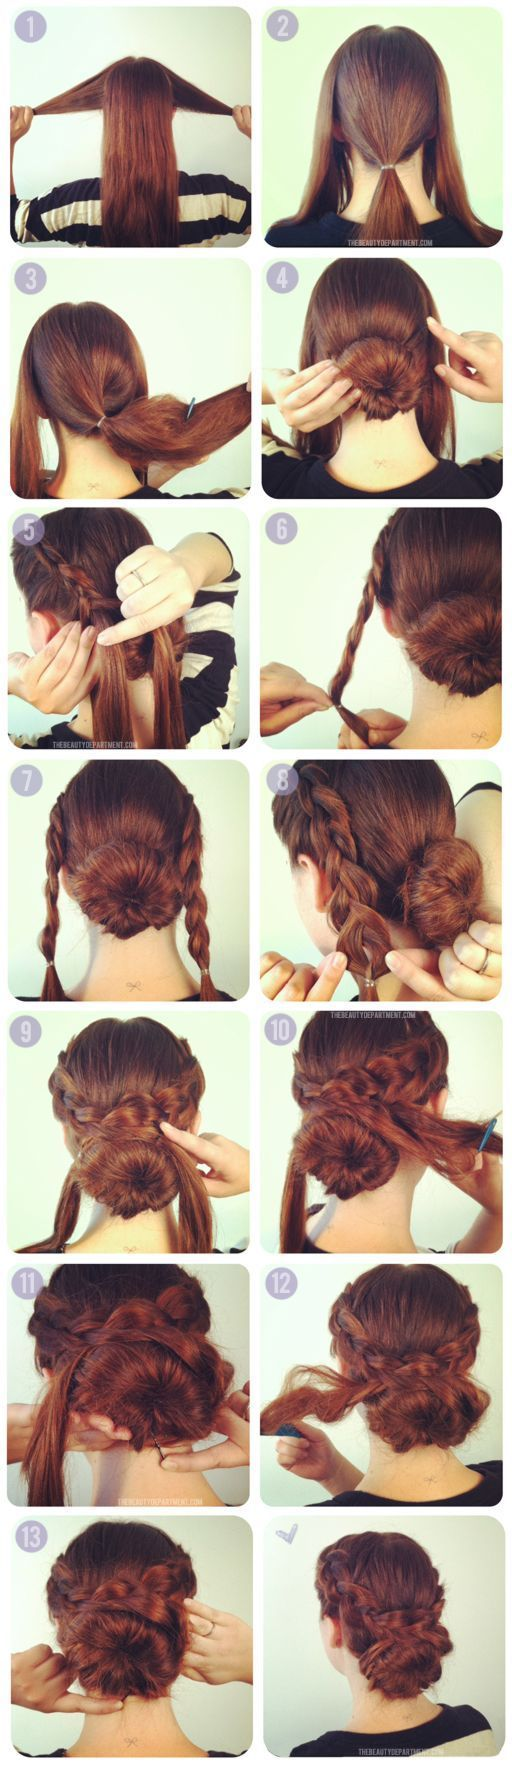 11 Trendy Victorian Hairstyle Tutorials To Stay Stylish And Elegant